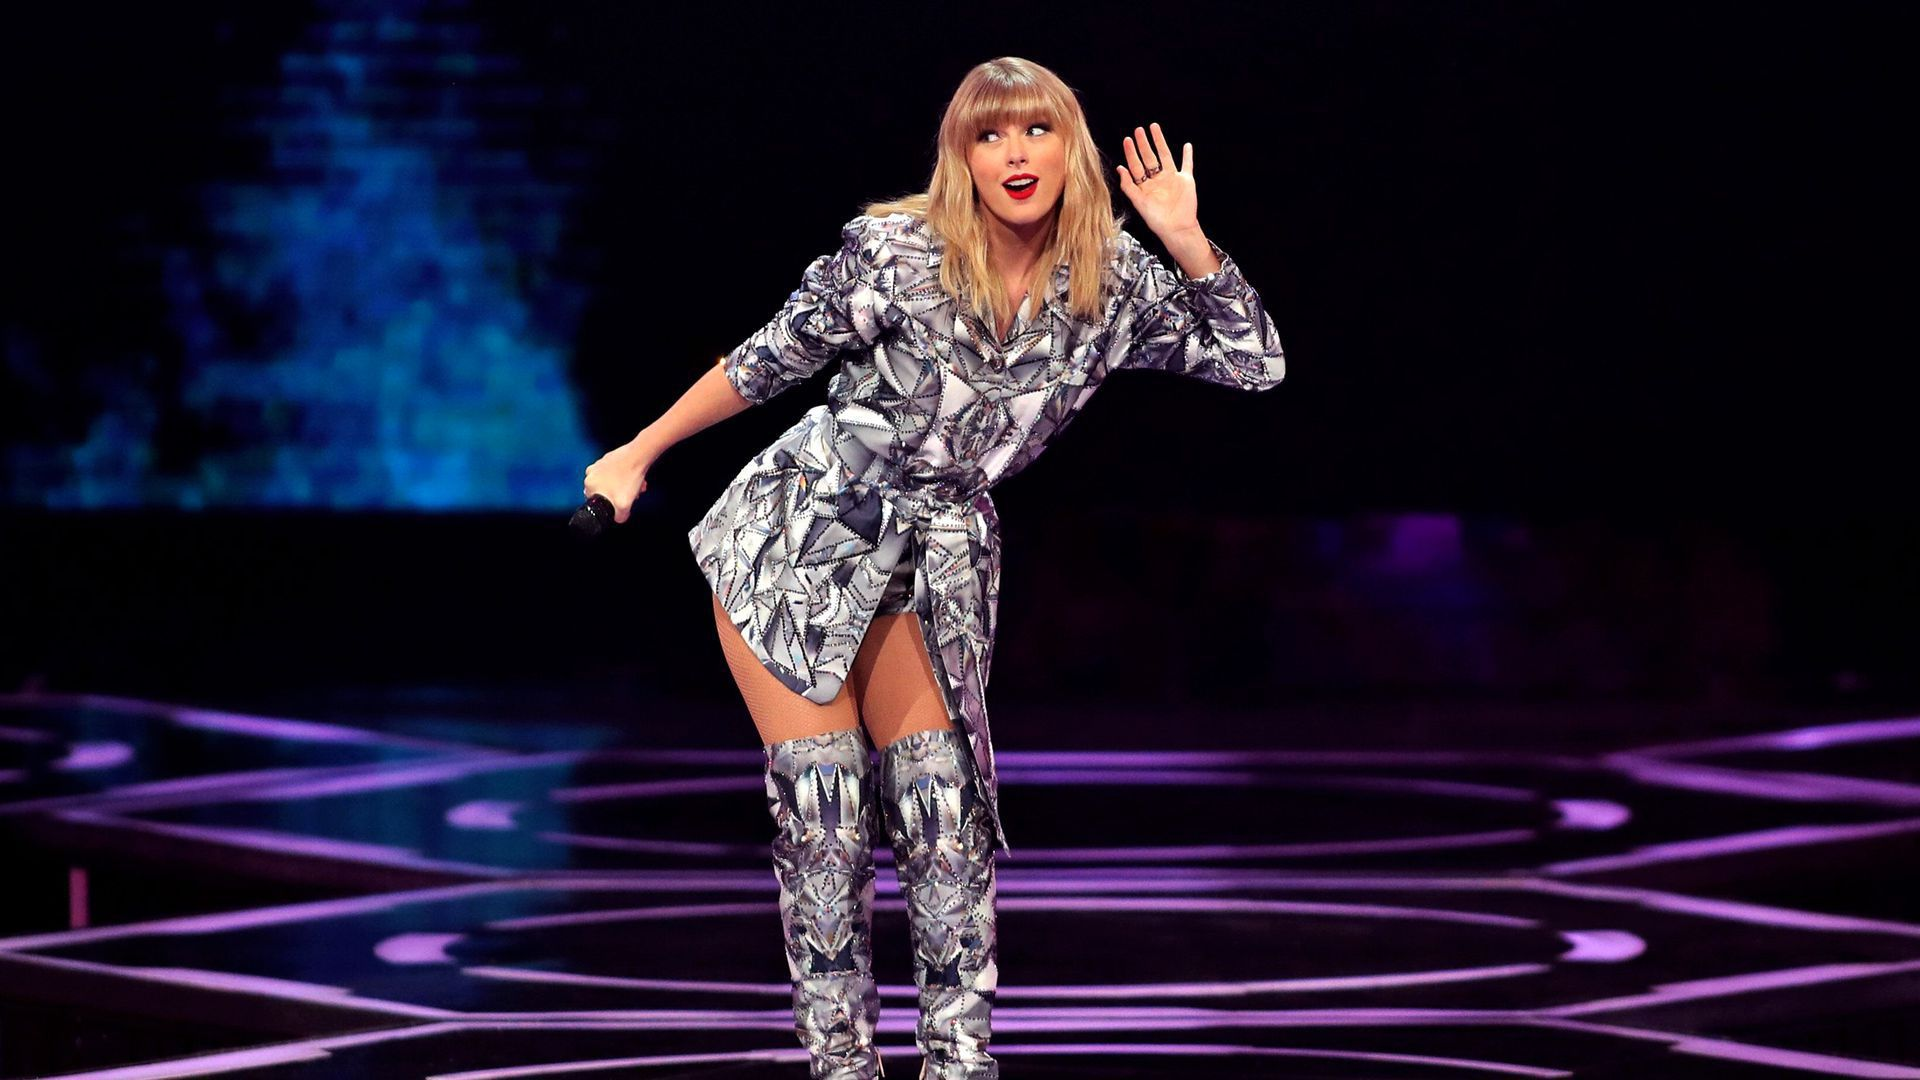 Taylor Swift crashes 2020 race with private equity broadside   Axios 1920x1080